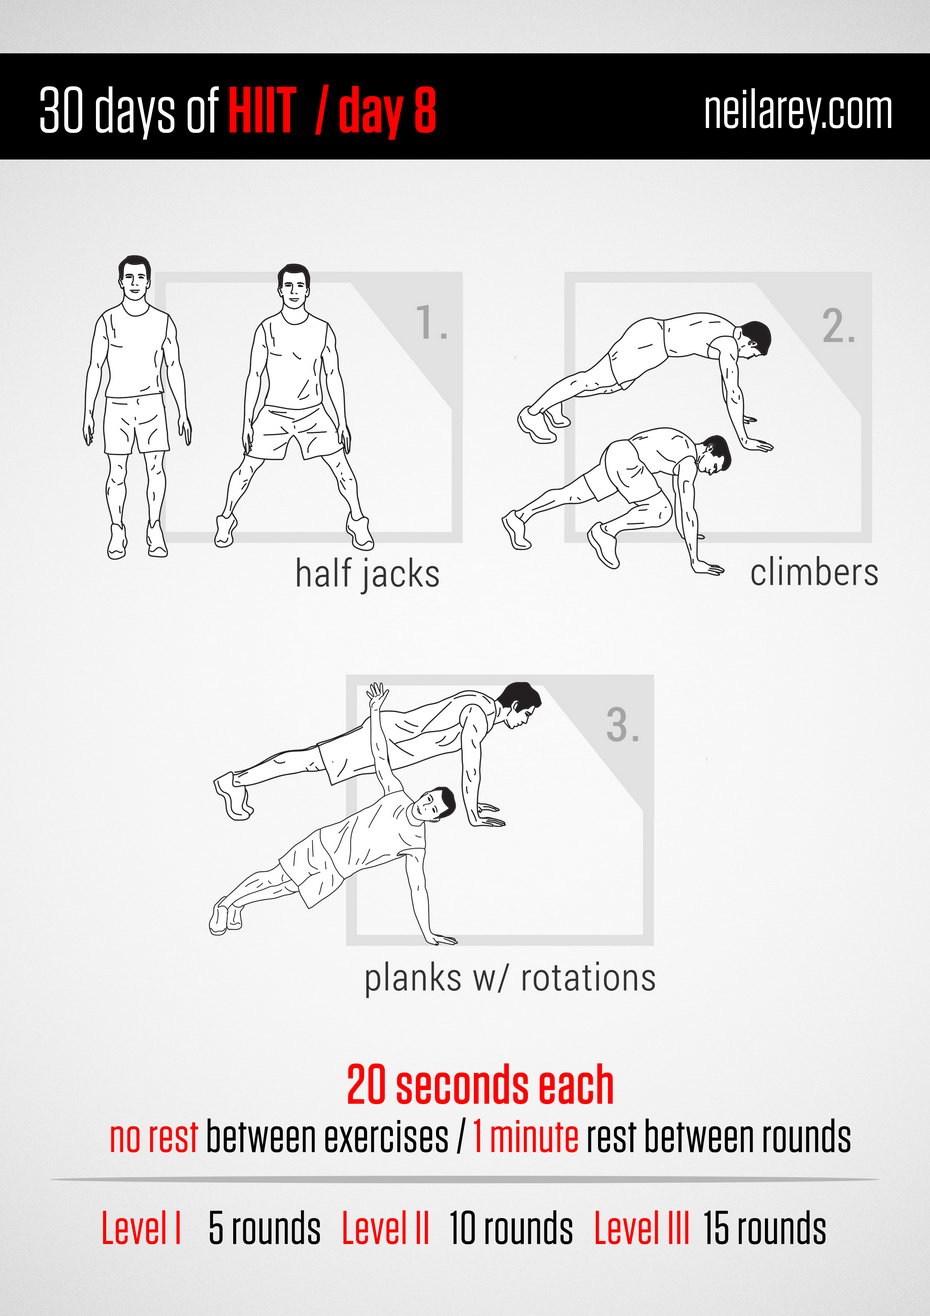 30 Days Of Hiit High Intensity Interval Training At Home Workout